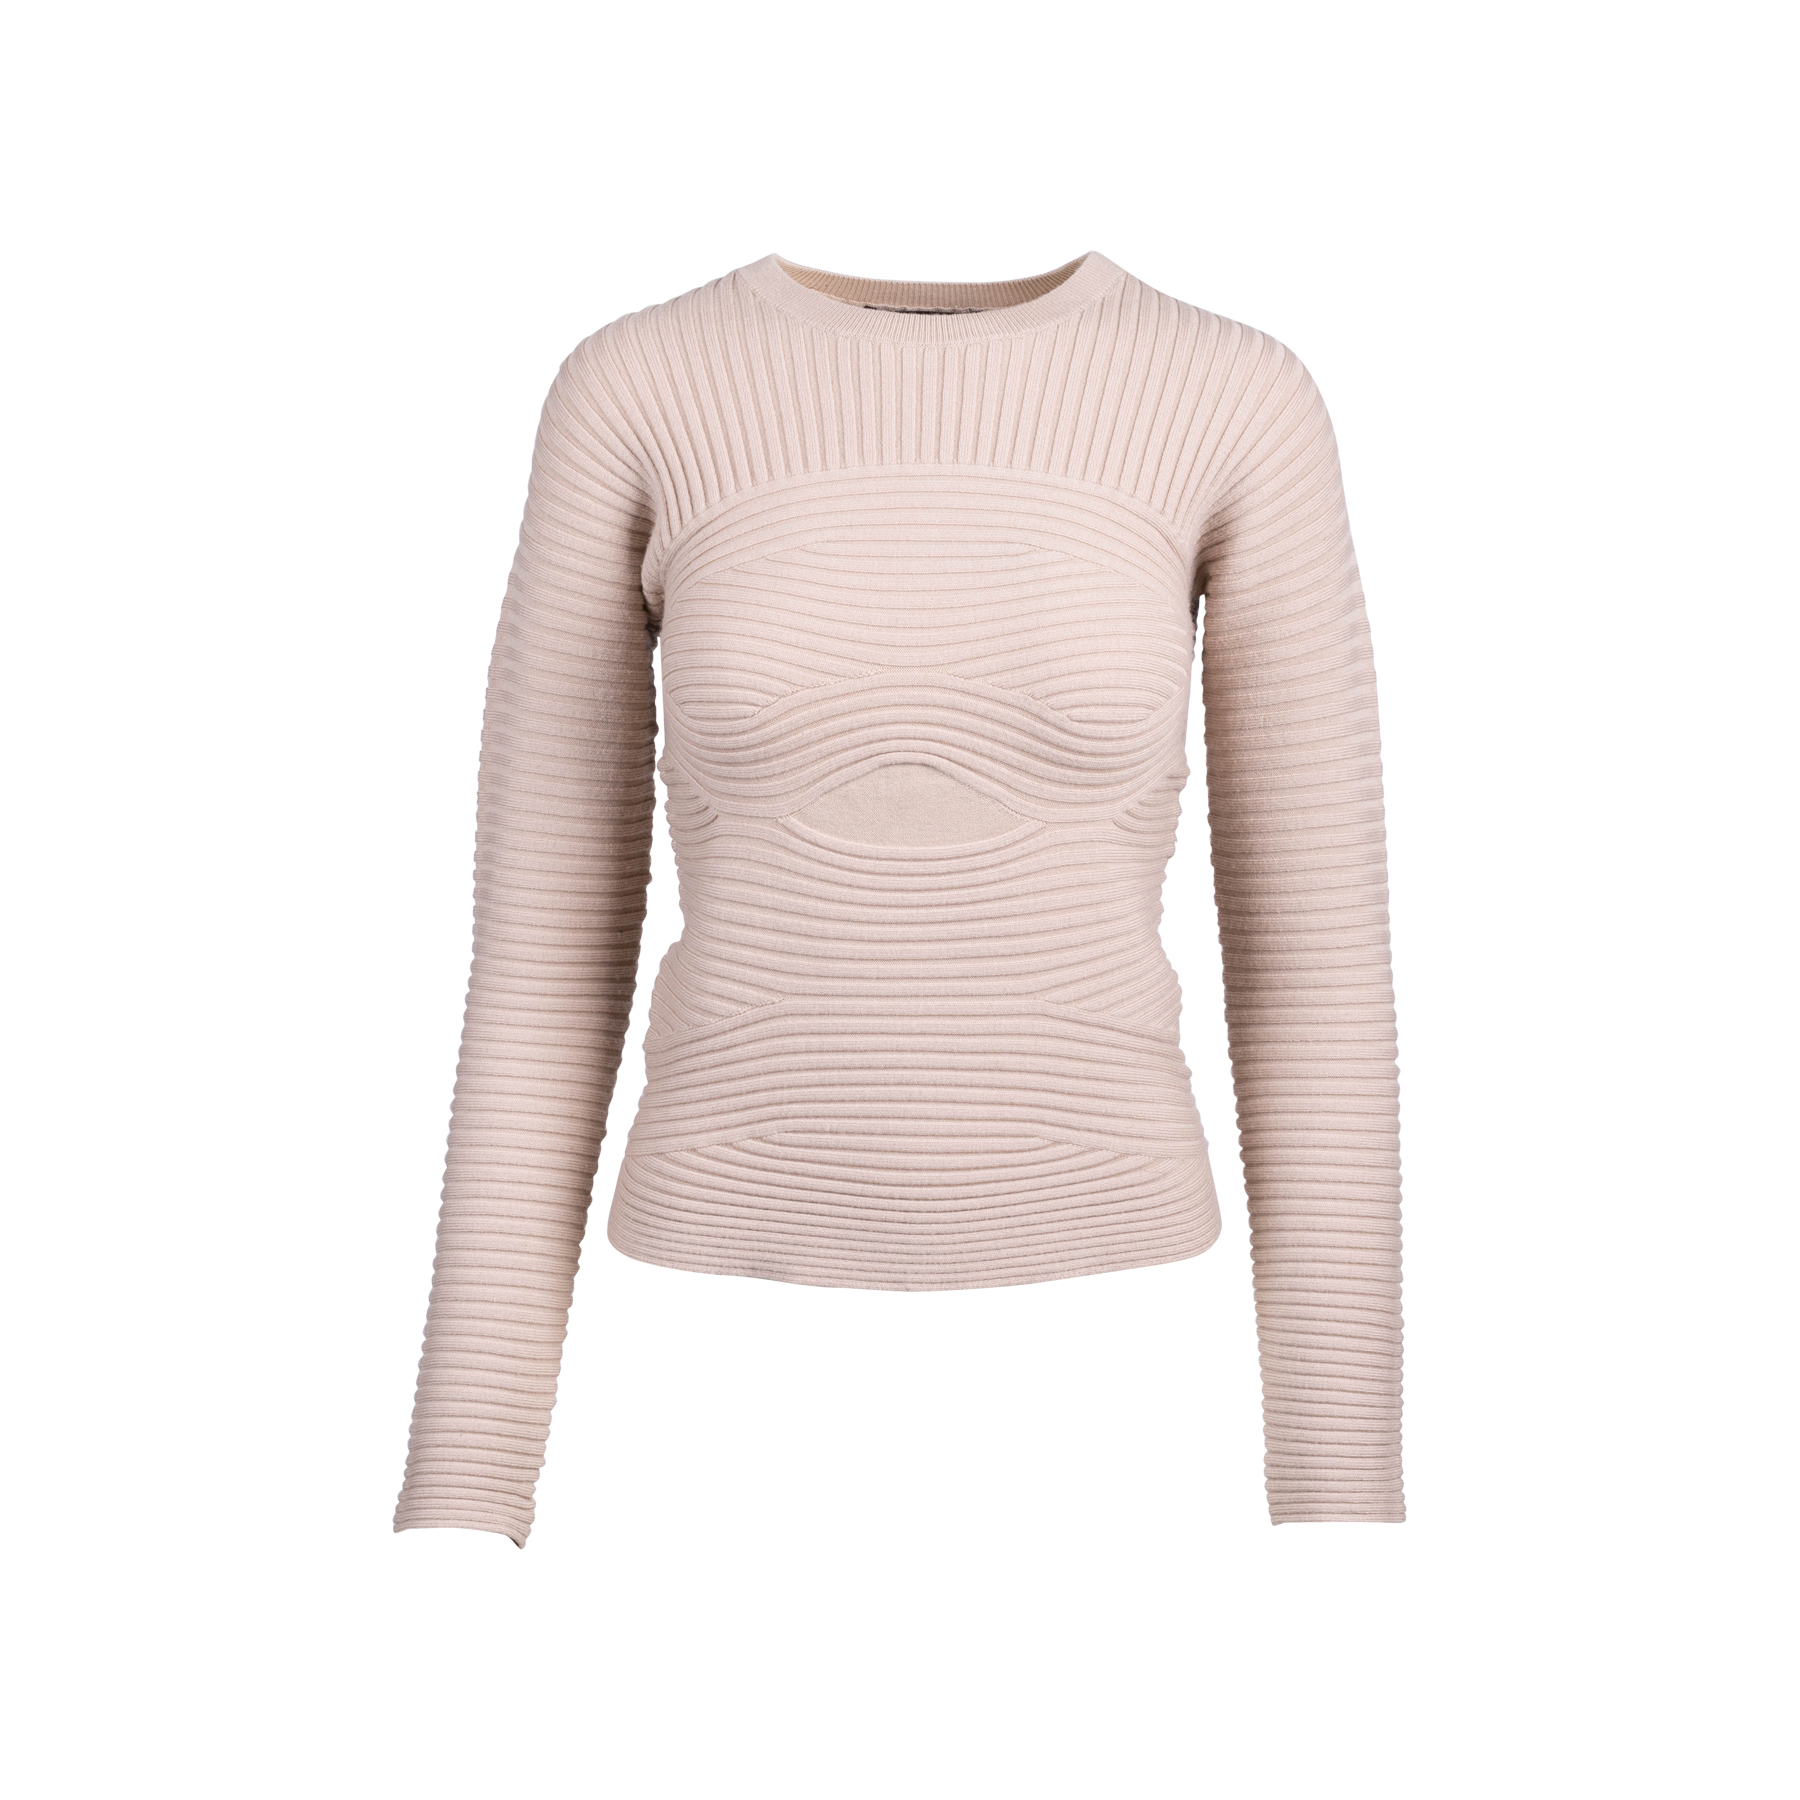 Wool Blend Knitted Top